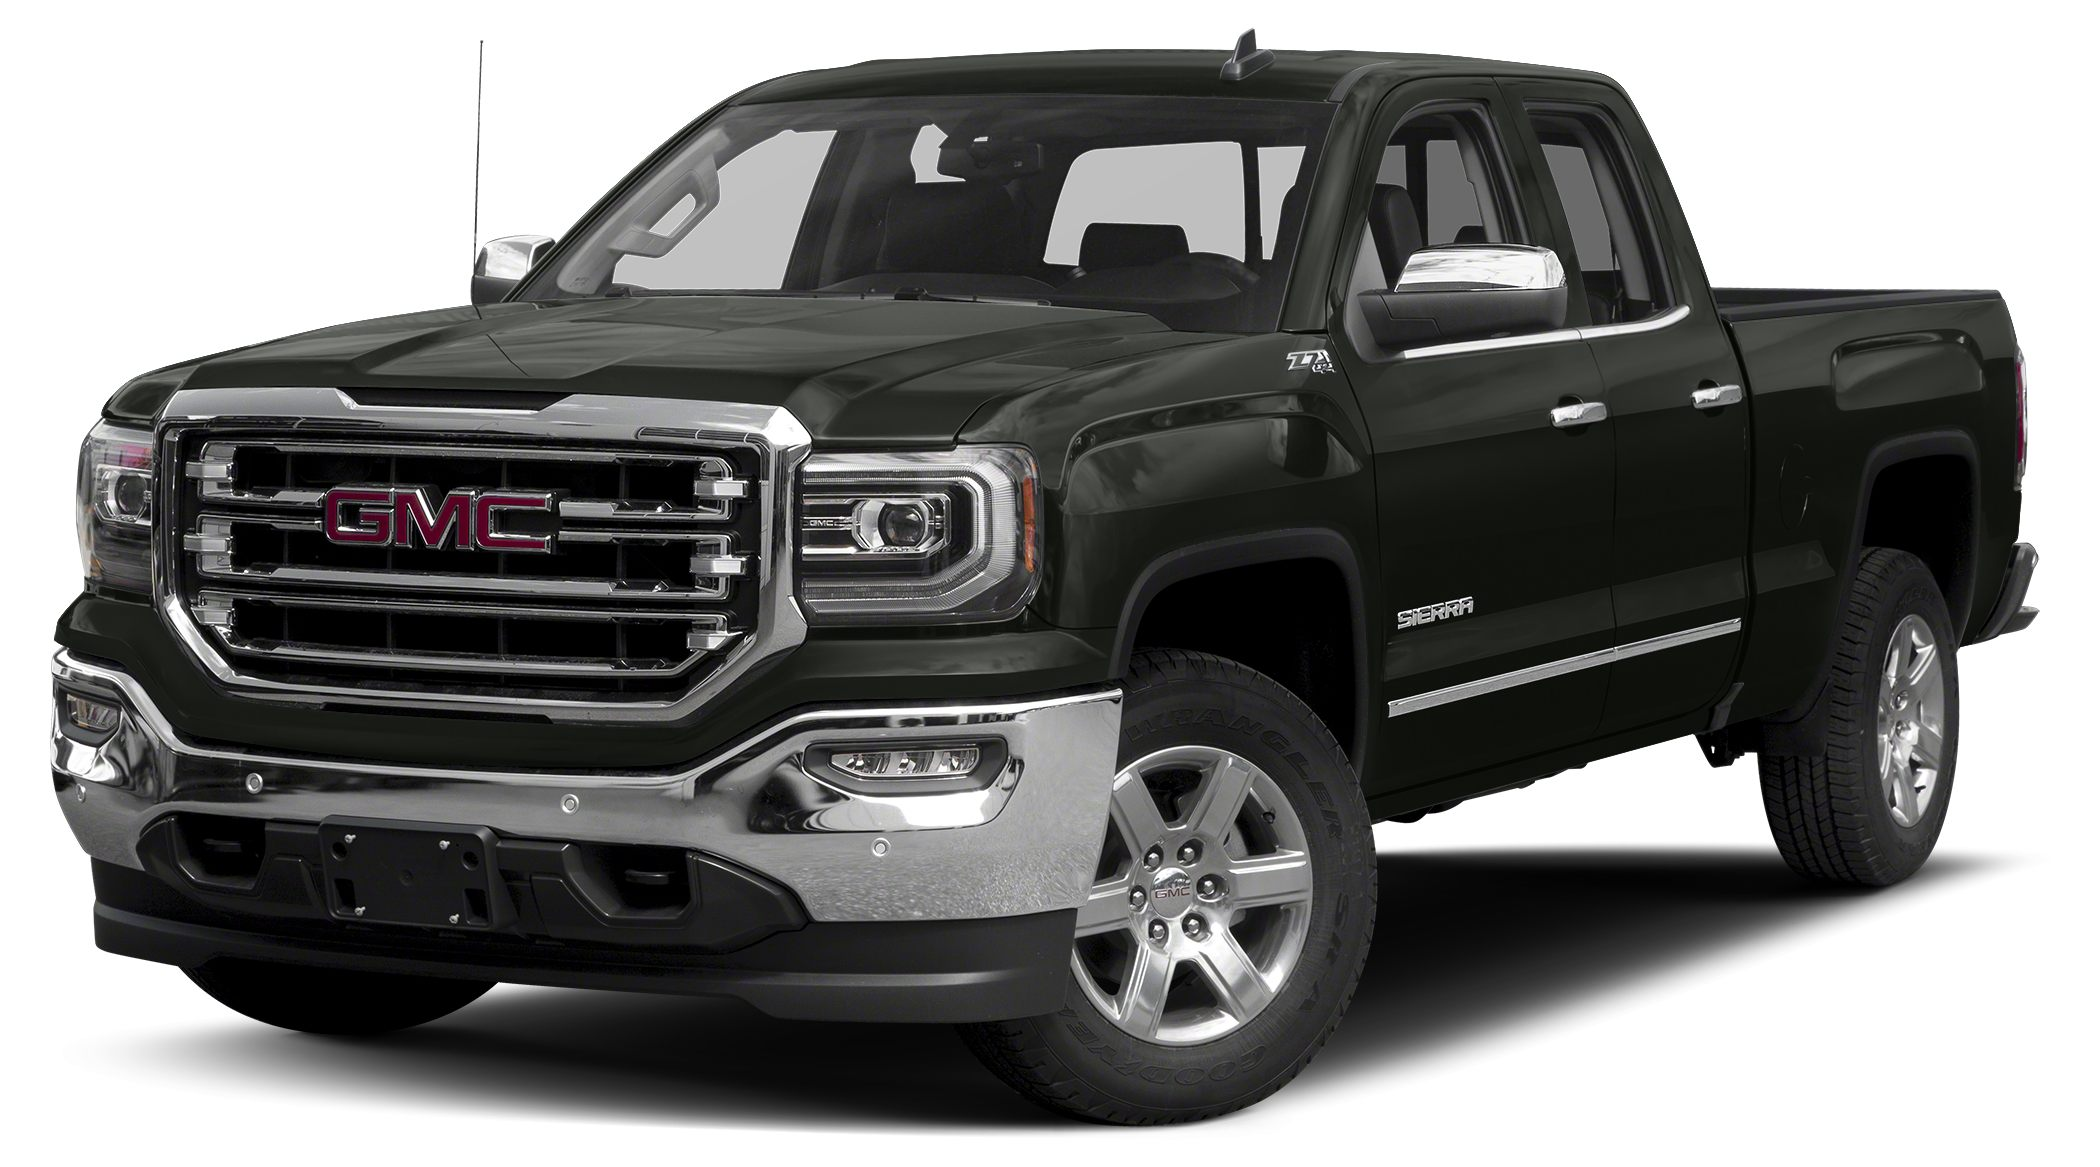 2018 GMC Sierra 1500 SLT Treat yourself to this 2018 GMC Sierra 1500 SLT which features a remote